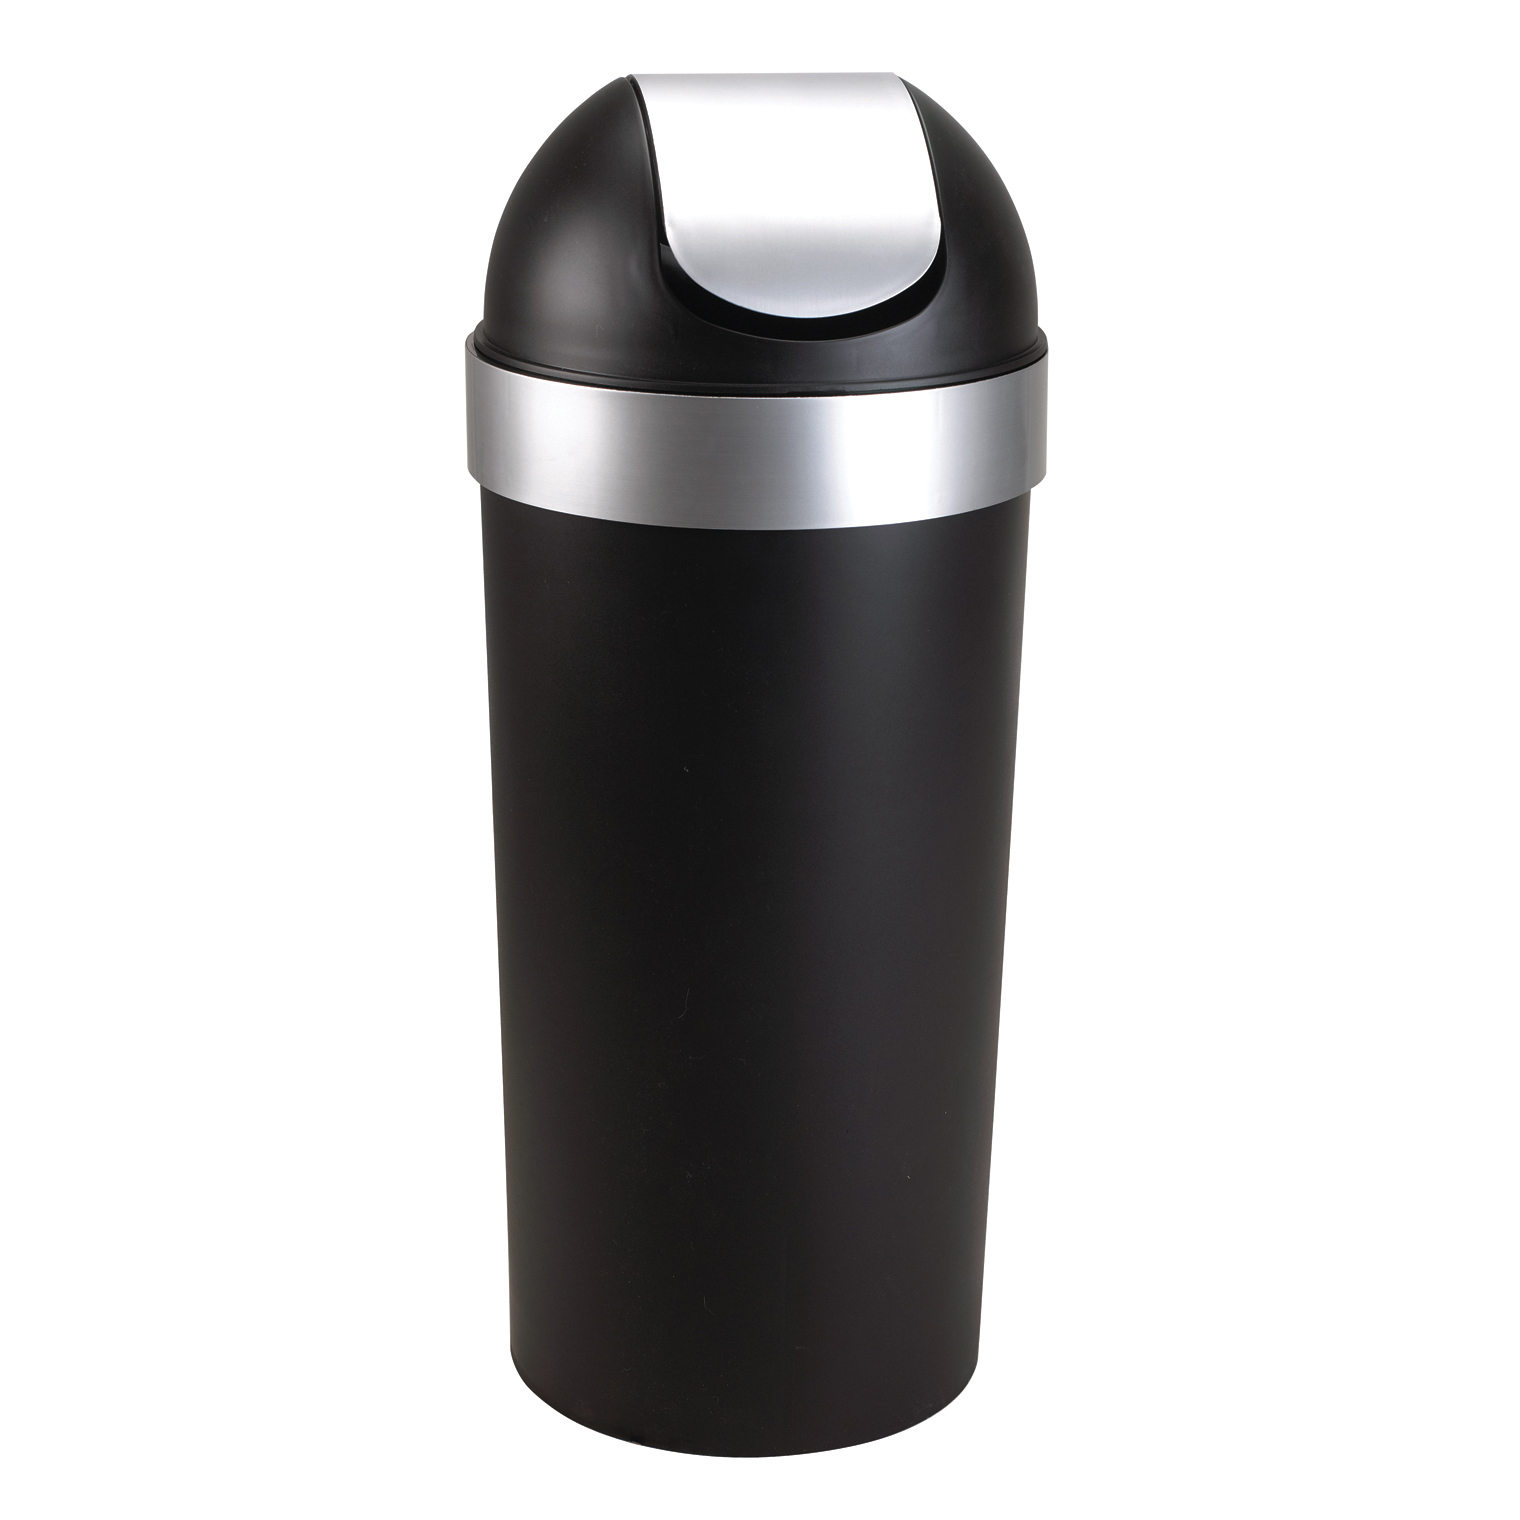 tall kitchen garbage can miami umbra venti 16 gallon swing top trash large 35 inch for indoor outdoor or commercial use black nickel walmart com